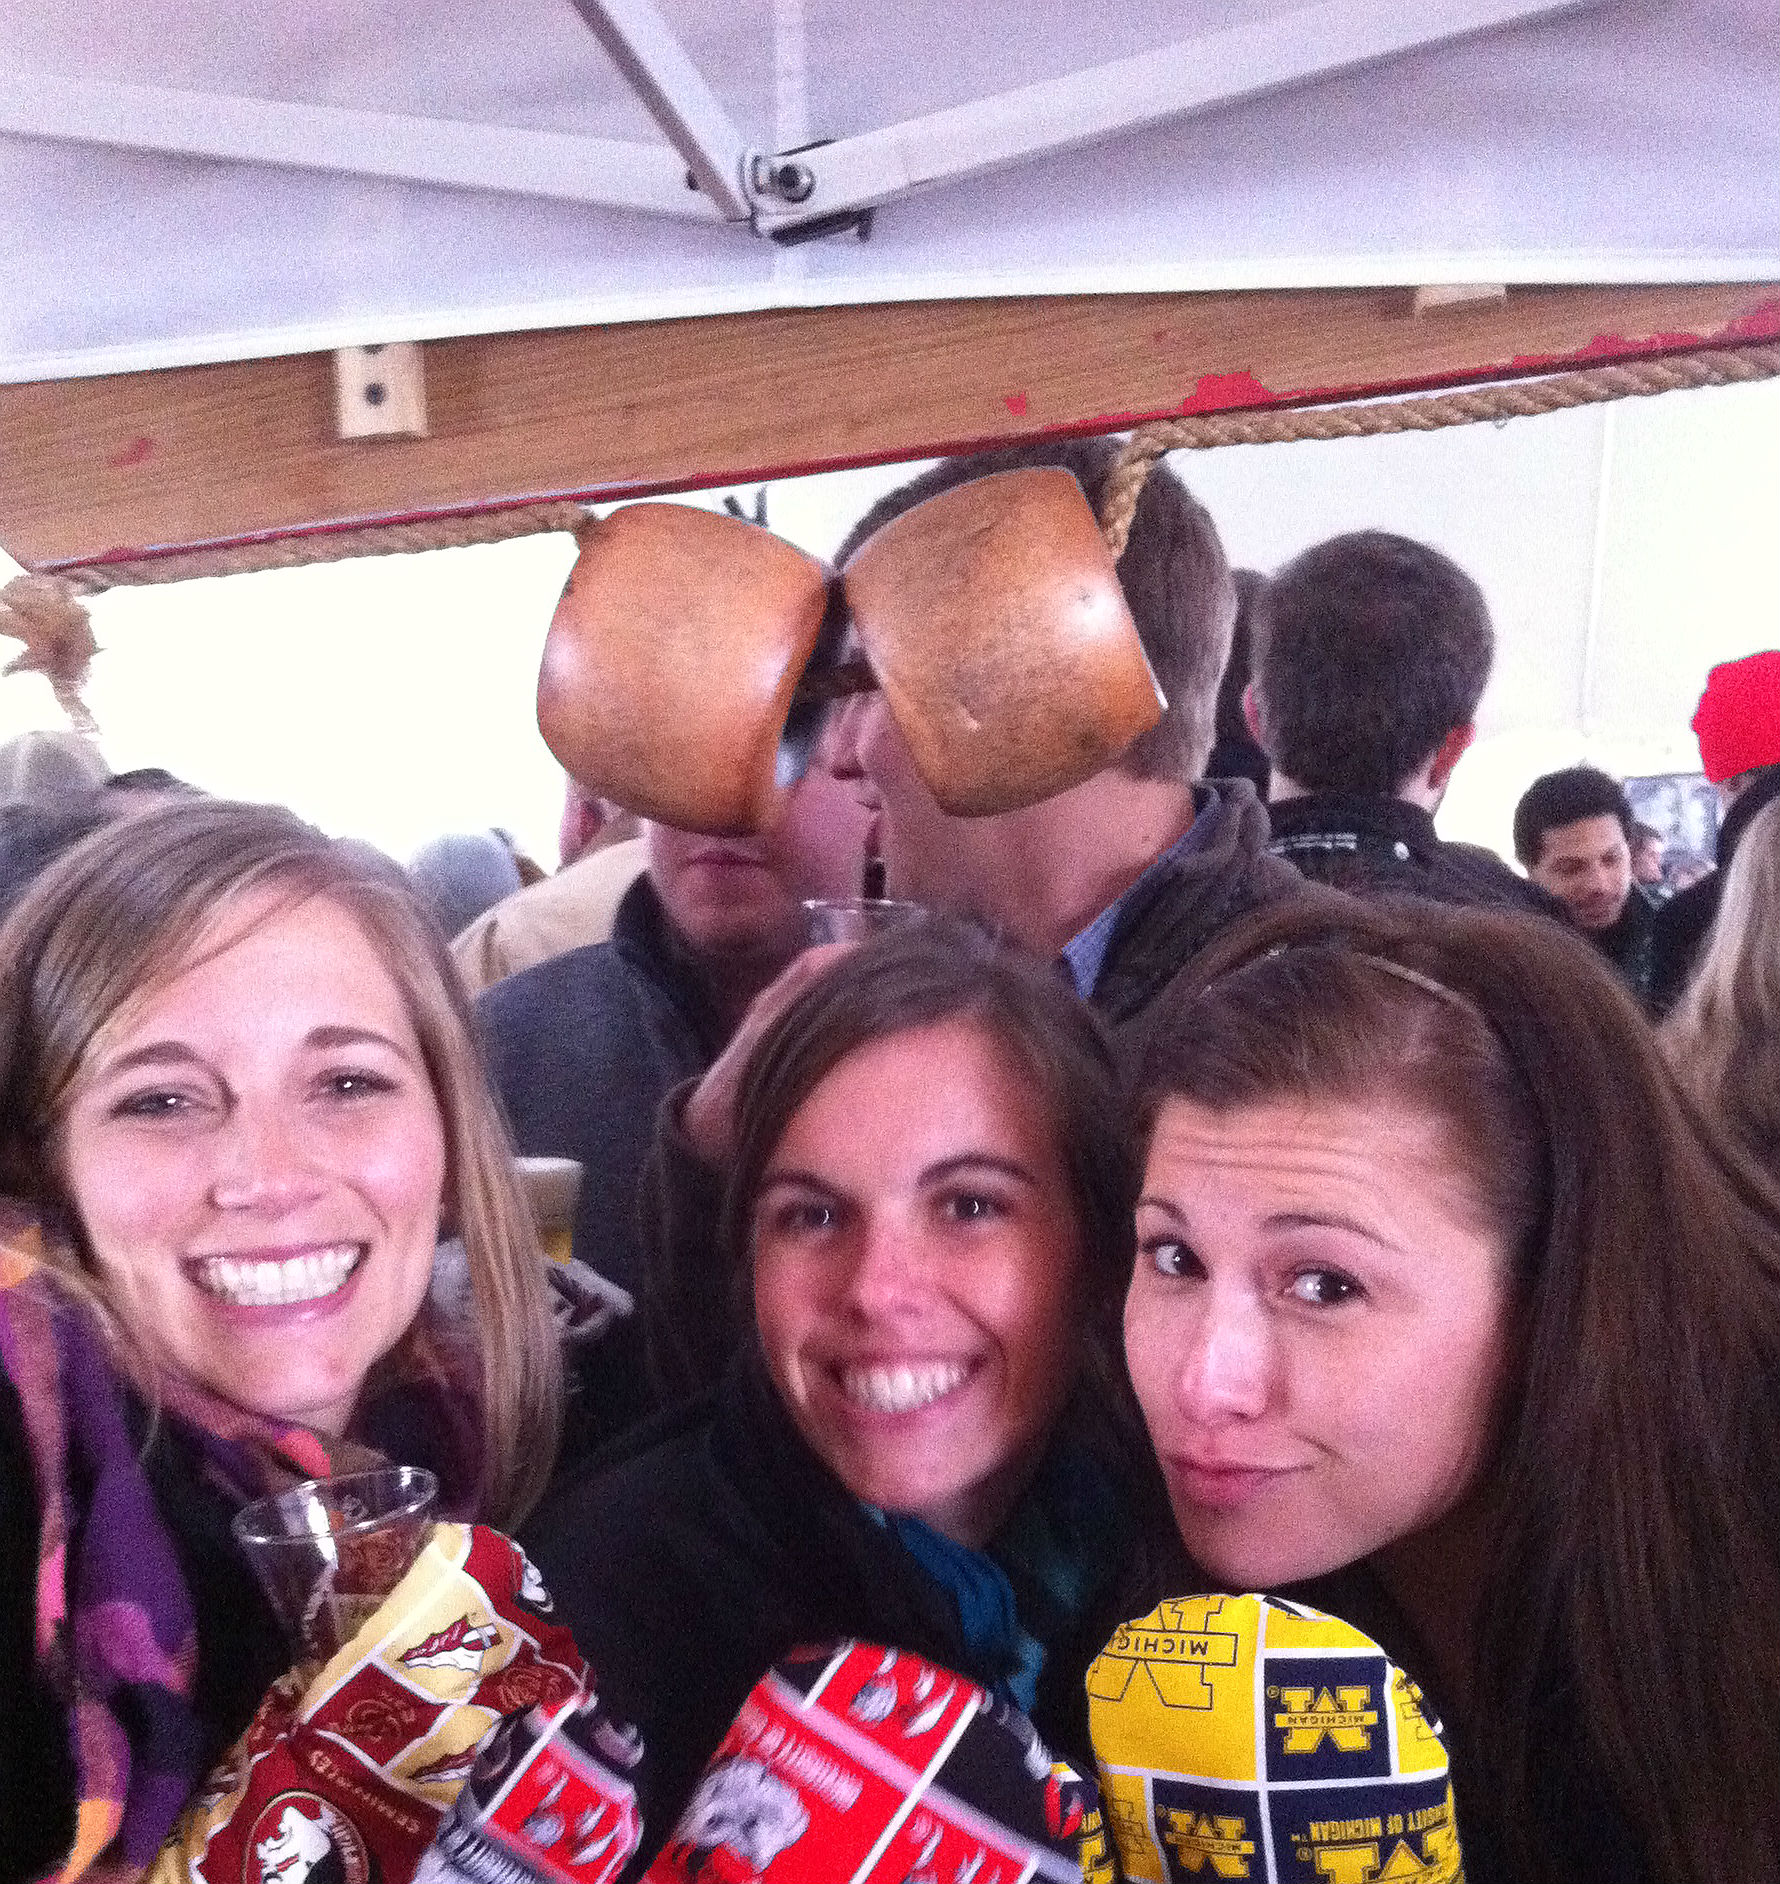 Some of our customers wearing their hand sewn team cooking mitts at the Beer & Bourbon BBQ festival in Atlanta.